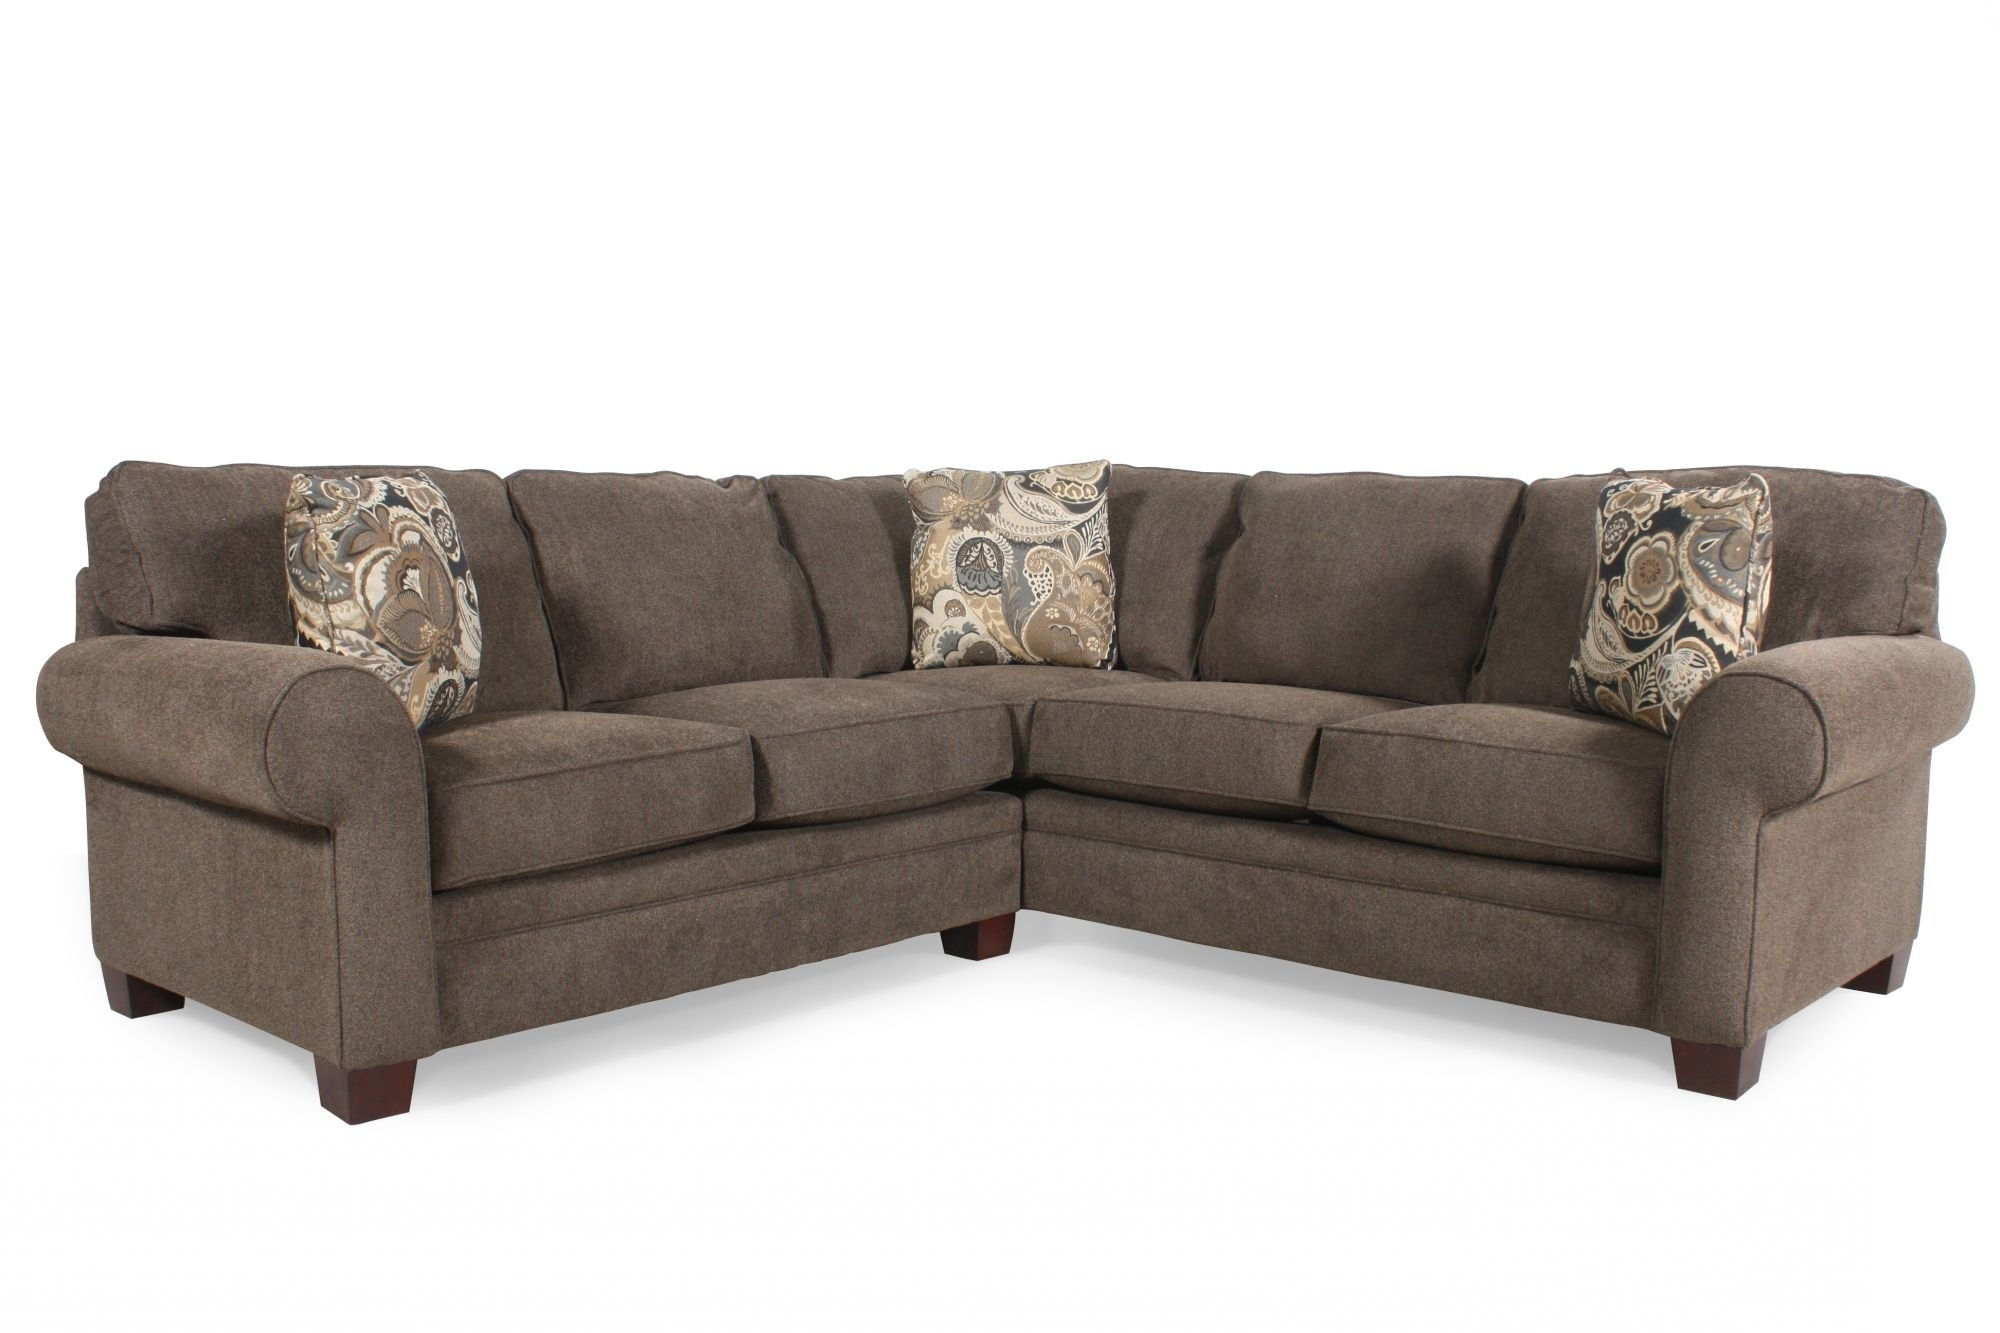 Latest Broyhill Sectional Sofas Pertaining To Broyhill Sectional Sofa (View 10 of 15)